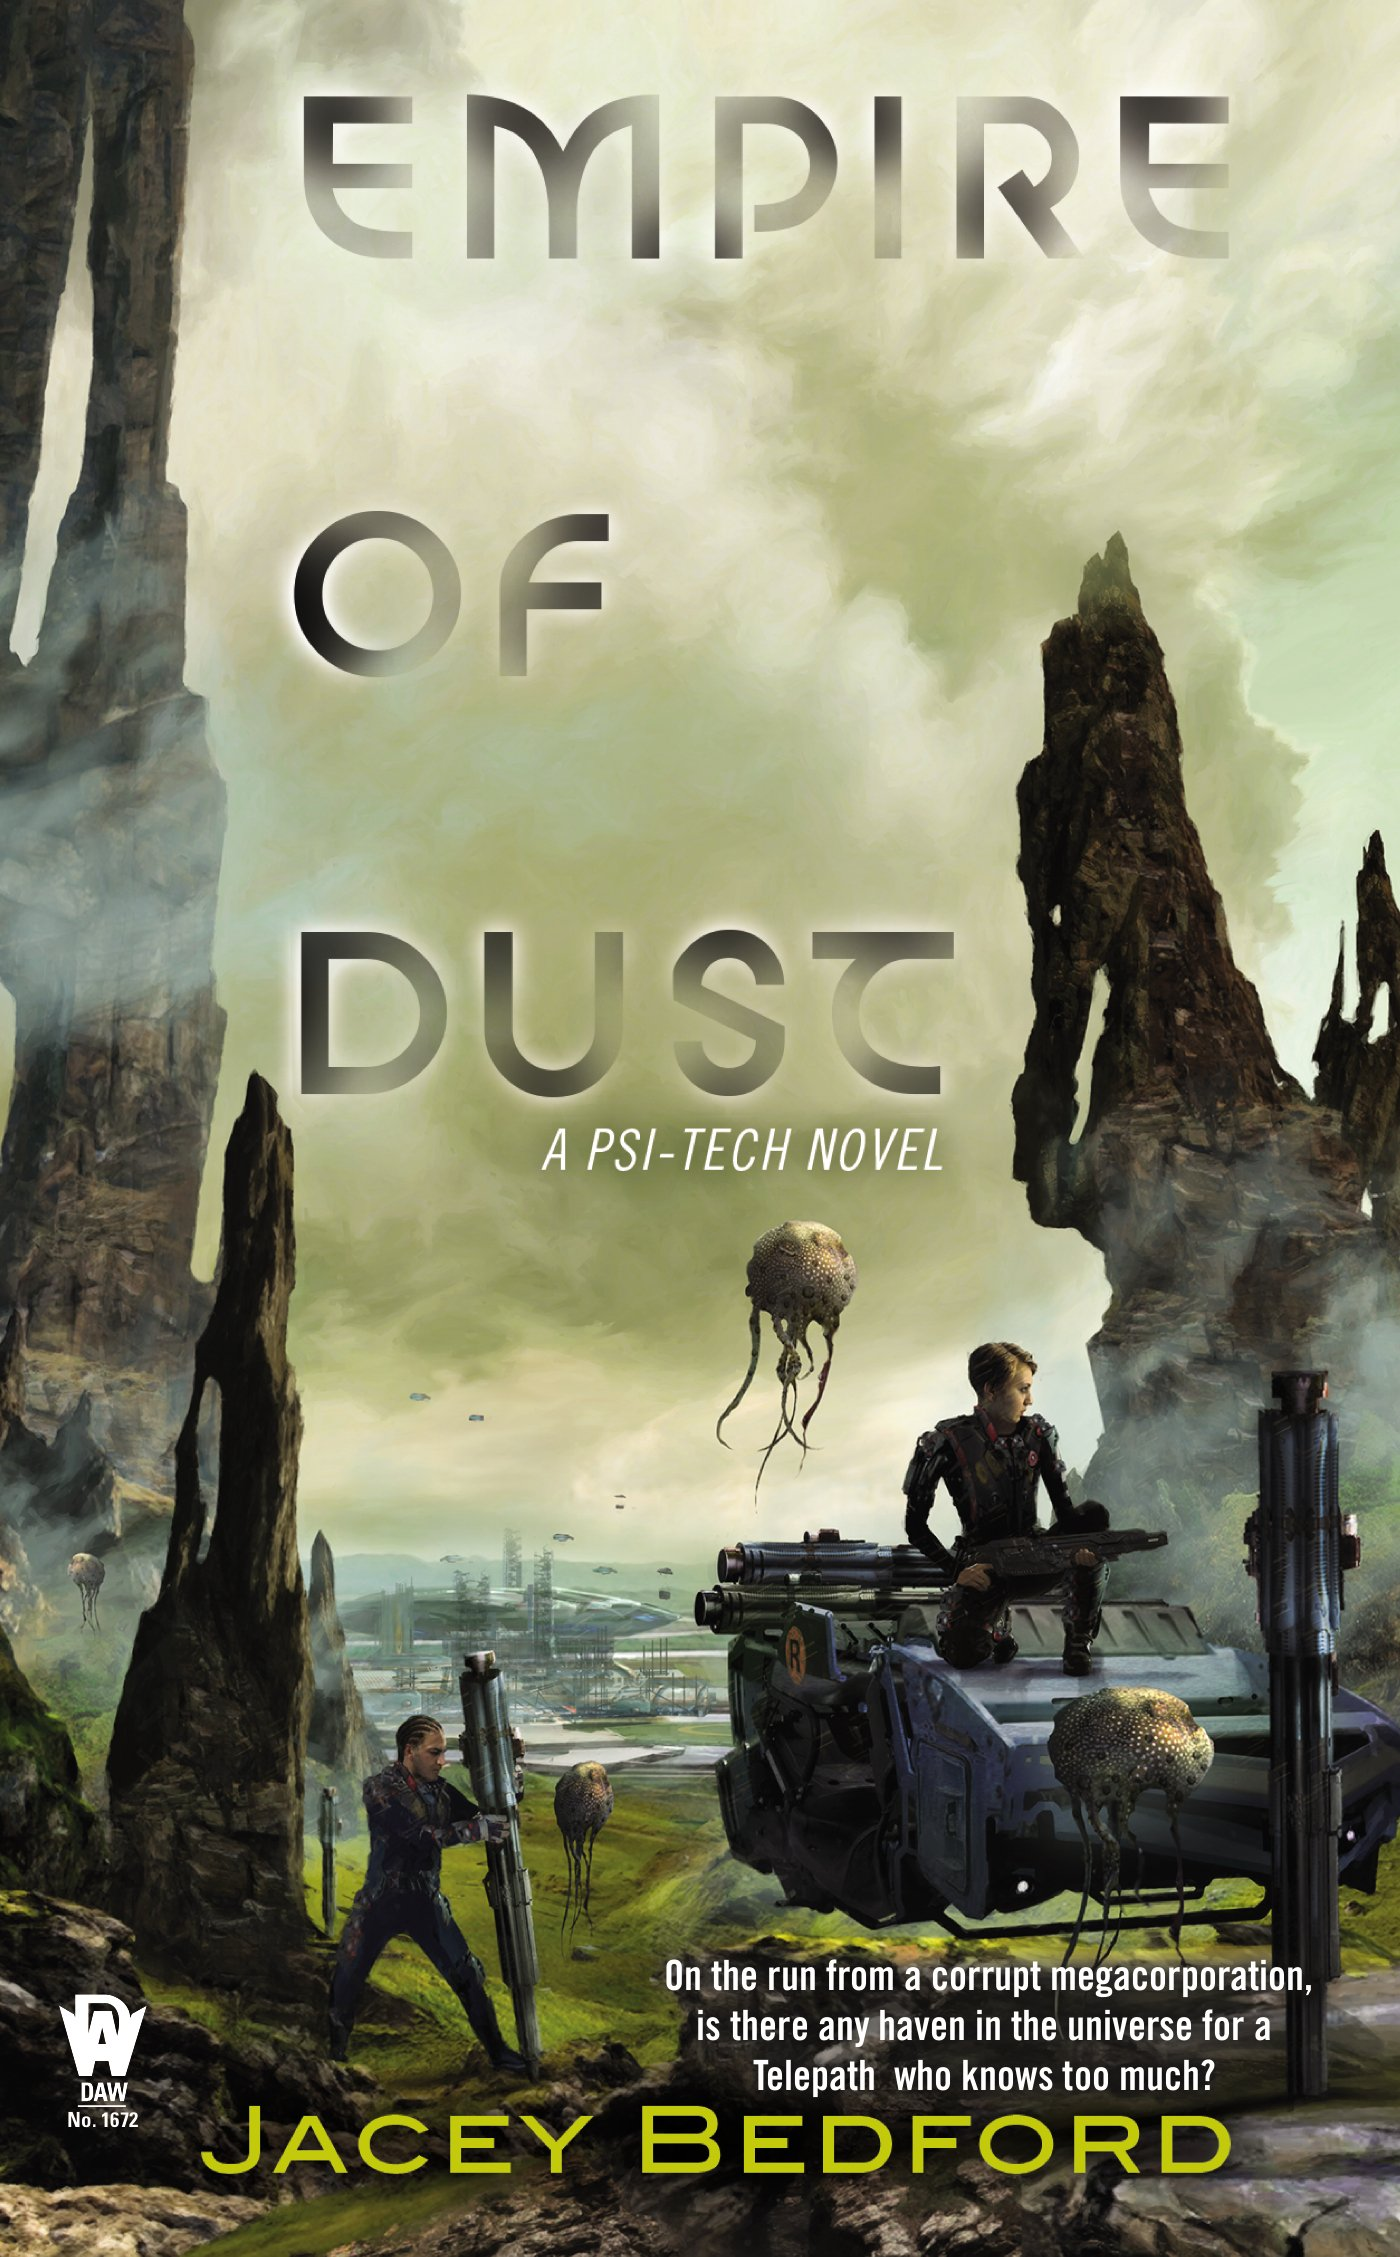 Jacey Bedford: Five Things I Learned Writing Empire Of Dust